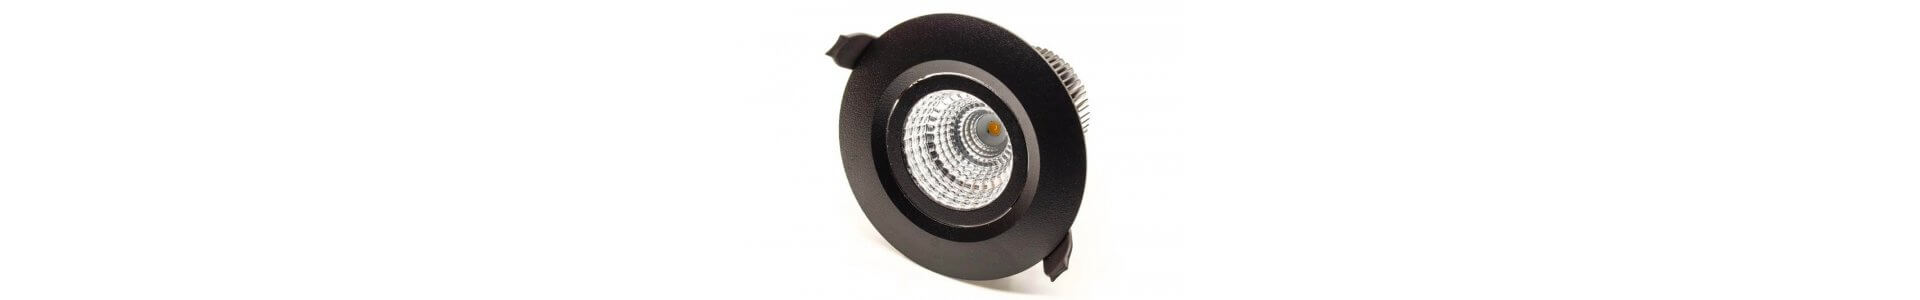 4-6w Led spotlights